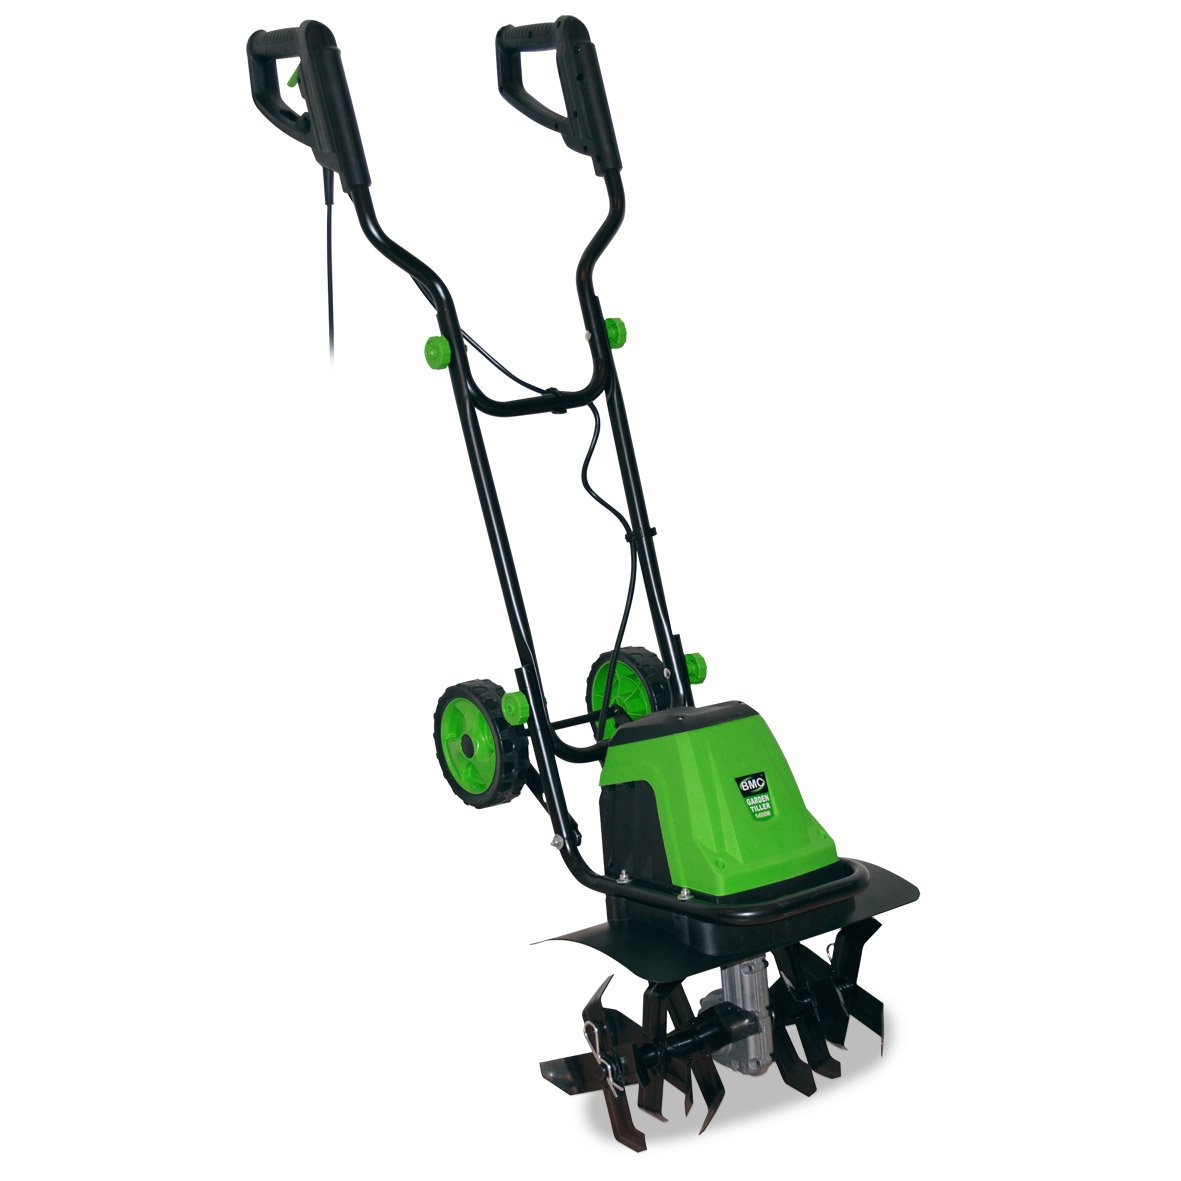 electric garden tiller. BMC From WOLF 1400 Watt, 400mm Electric Portable Garden Tiller Cultivator Rotavator Plus FREE 14 Metre Heavy Duty 1.5mm 3 Core Extension Power Cable Worth T